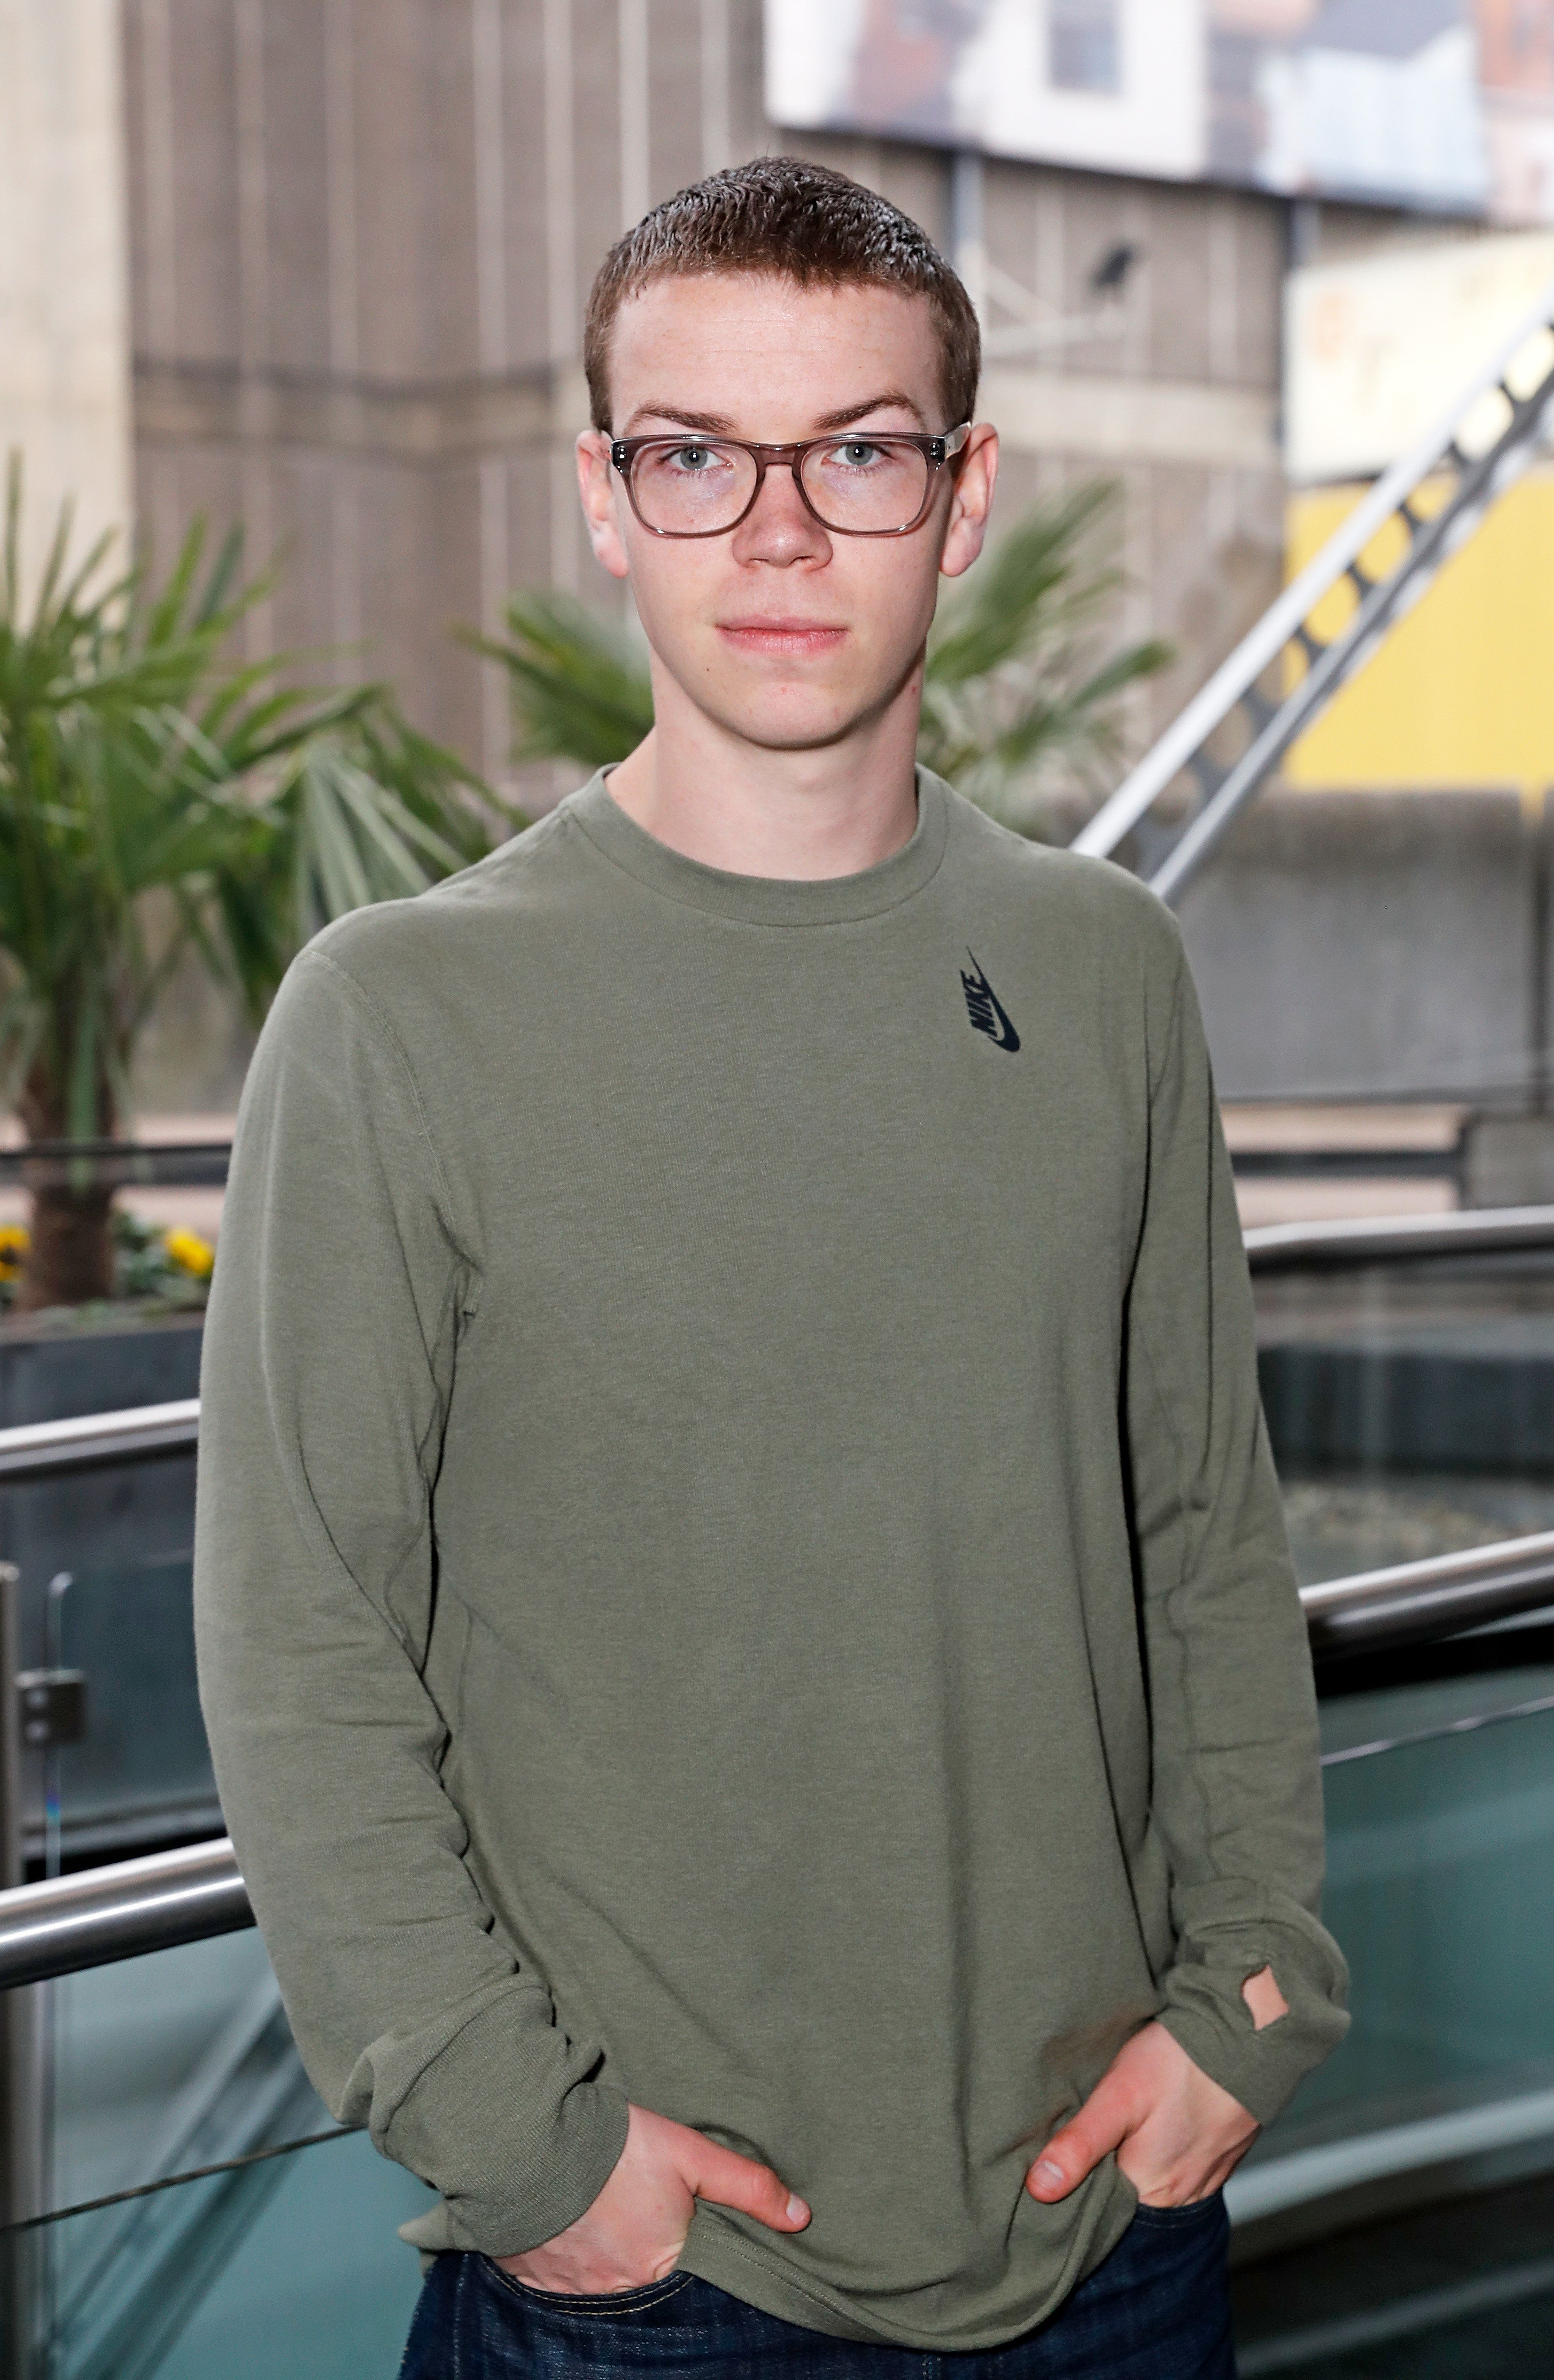 'Bandersnatch' Actor Will Poulter 'Steps Back' From Twitter 'In Interest Of His Mental